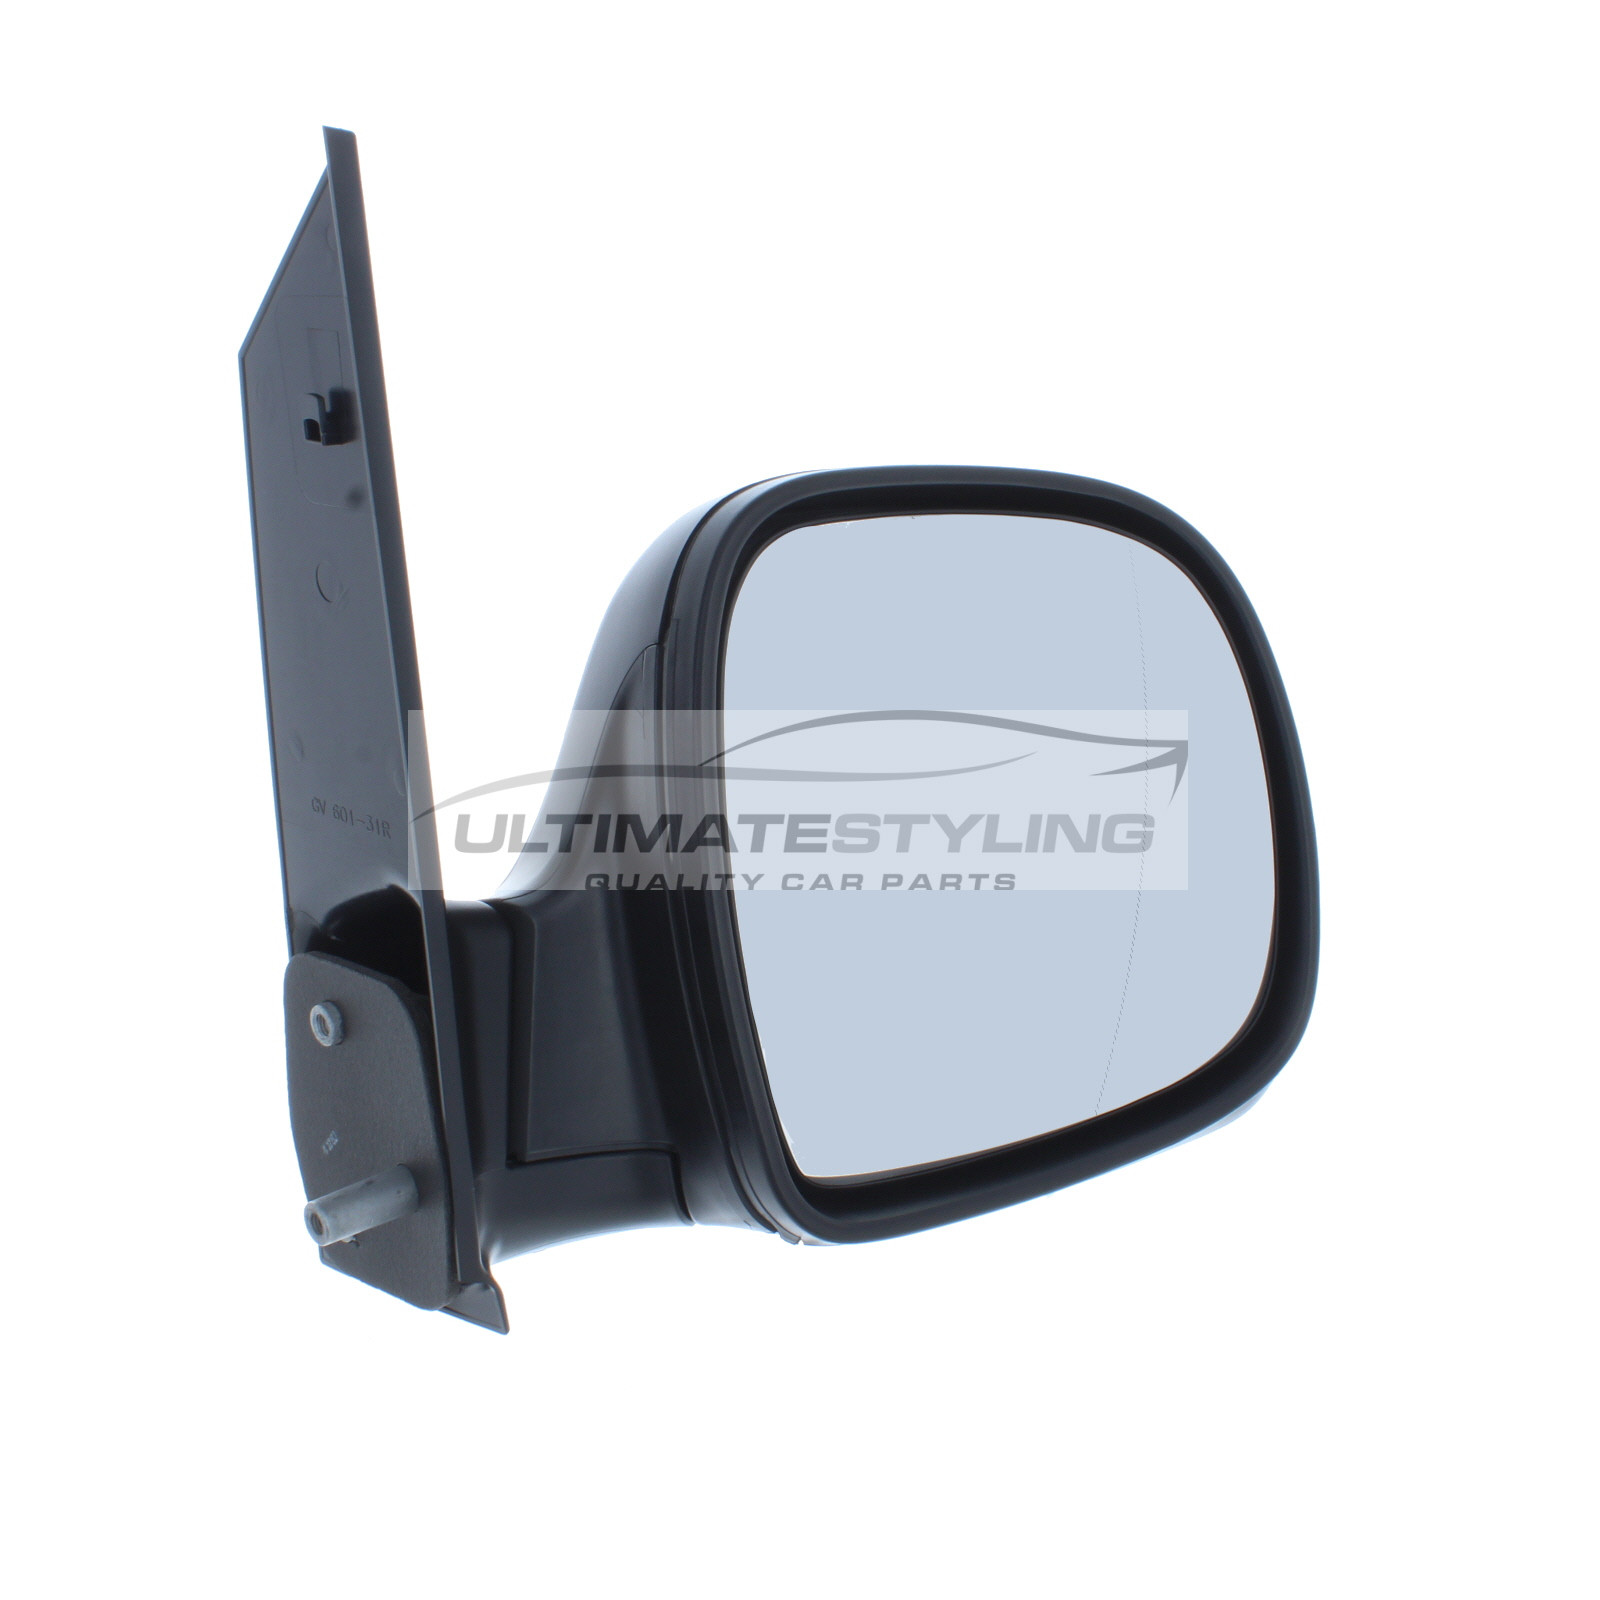 Ultimate Styling Aftermarket Replacement Wing Mirror Cover Cap Colour Of Cover Black RH Right Hand Side Textured For Drivers Side